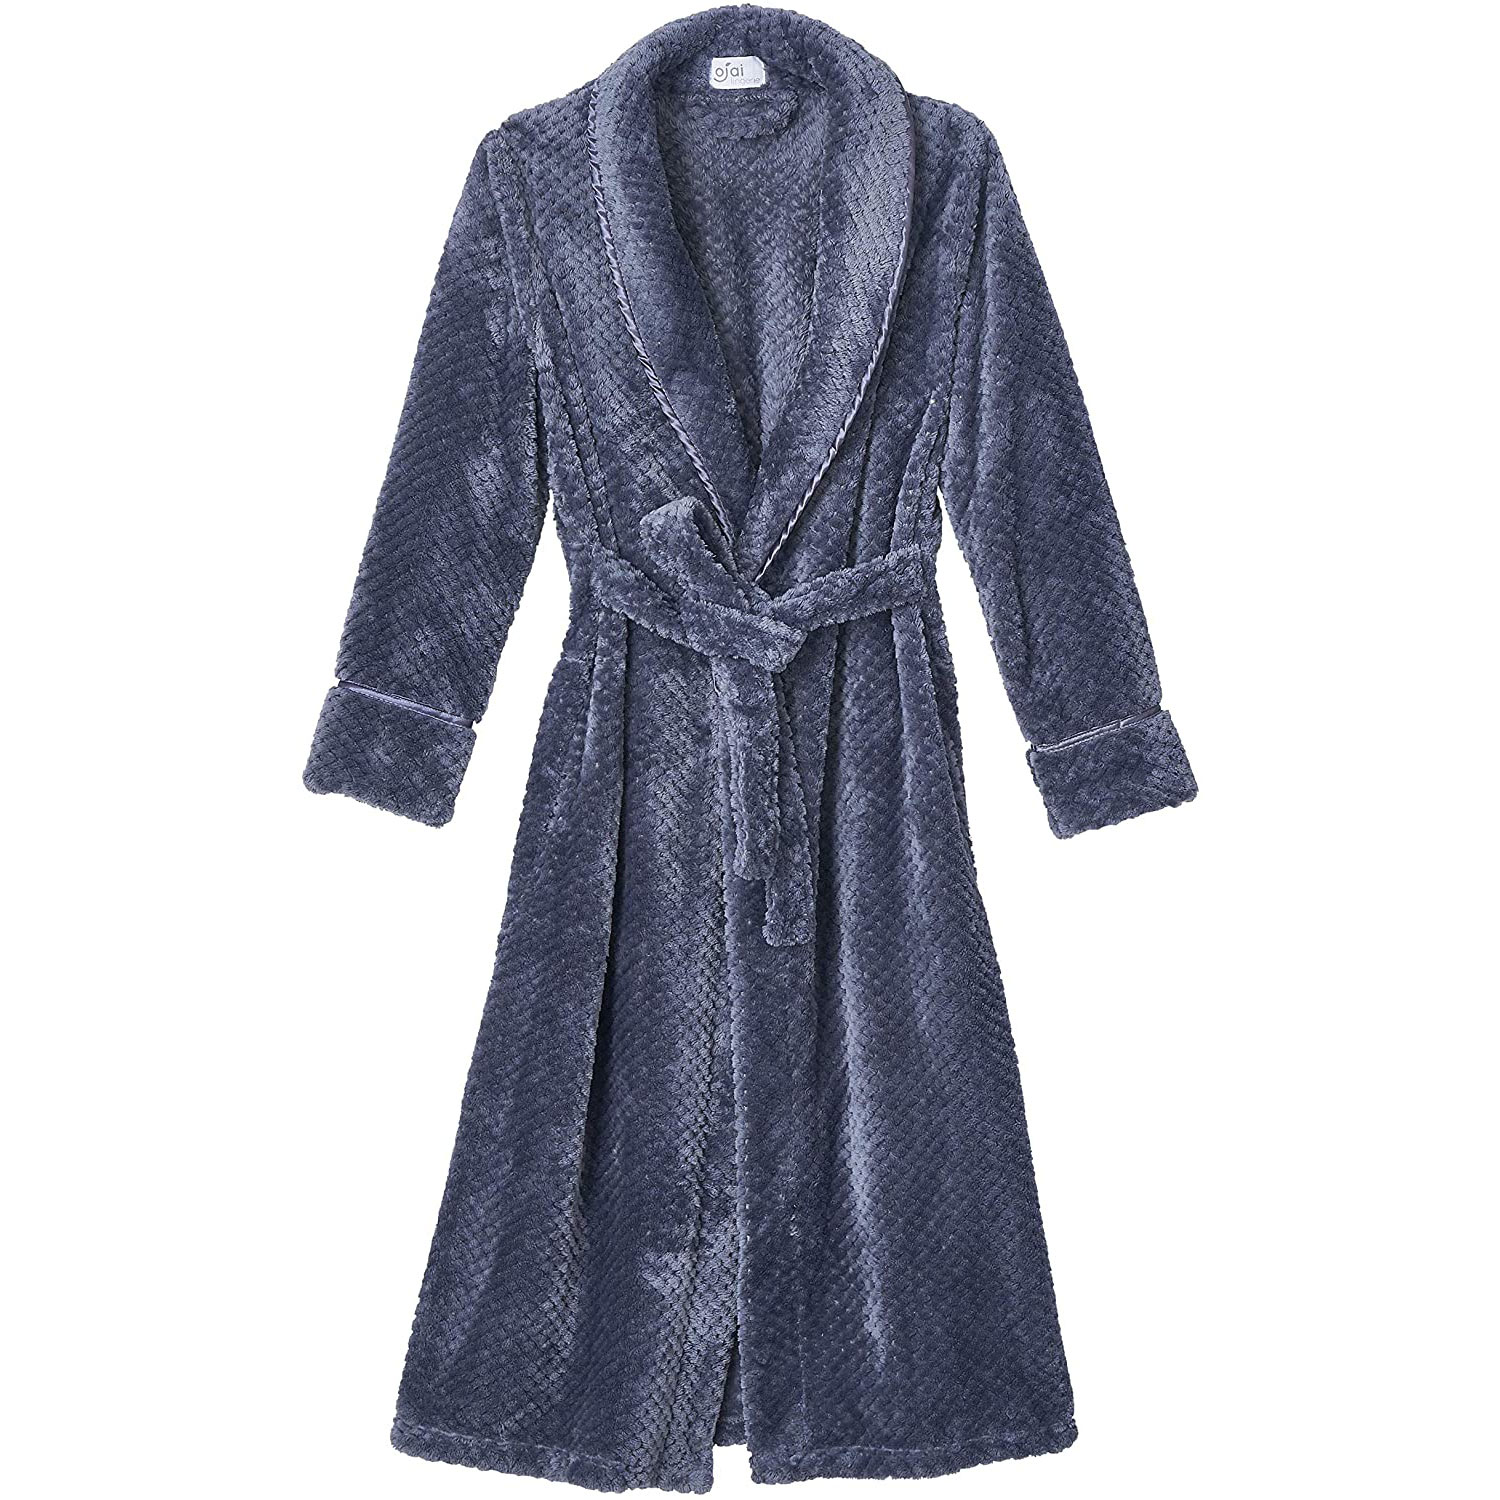 ojai lingerie women's ultra plush fleece bathrobe